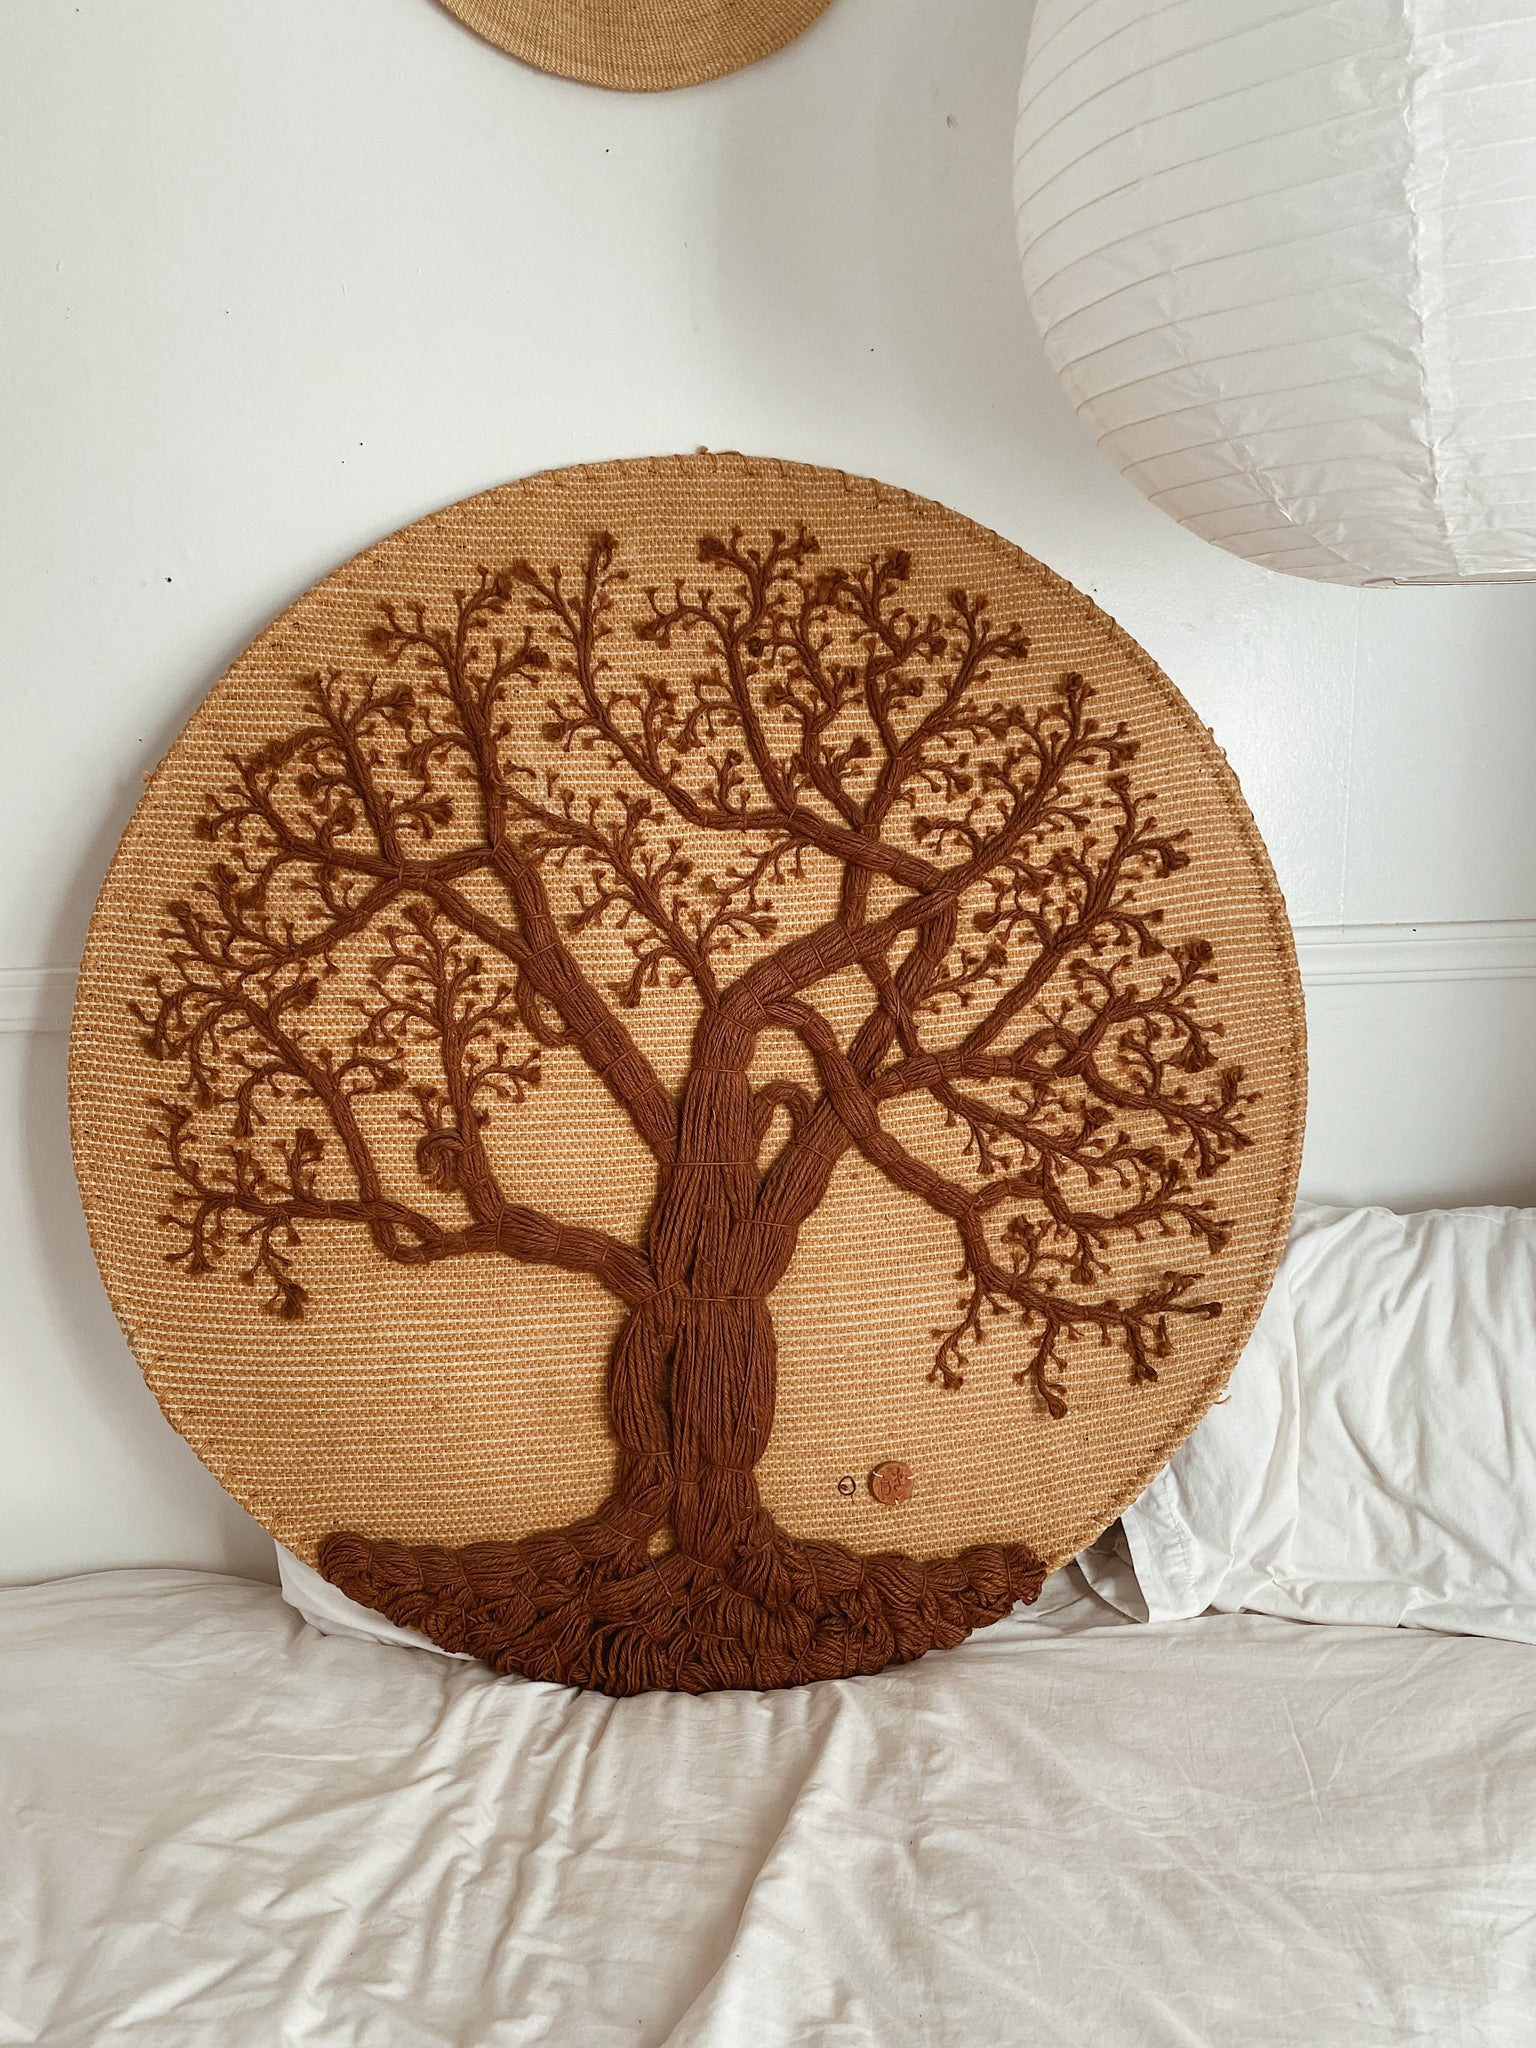 Giant Vintage Don Freedman Tree Wall Hanging